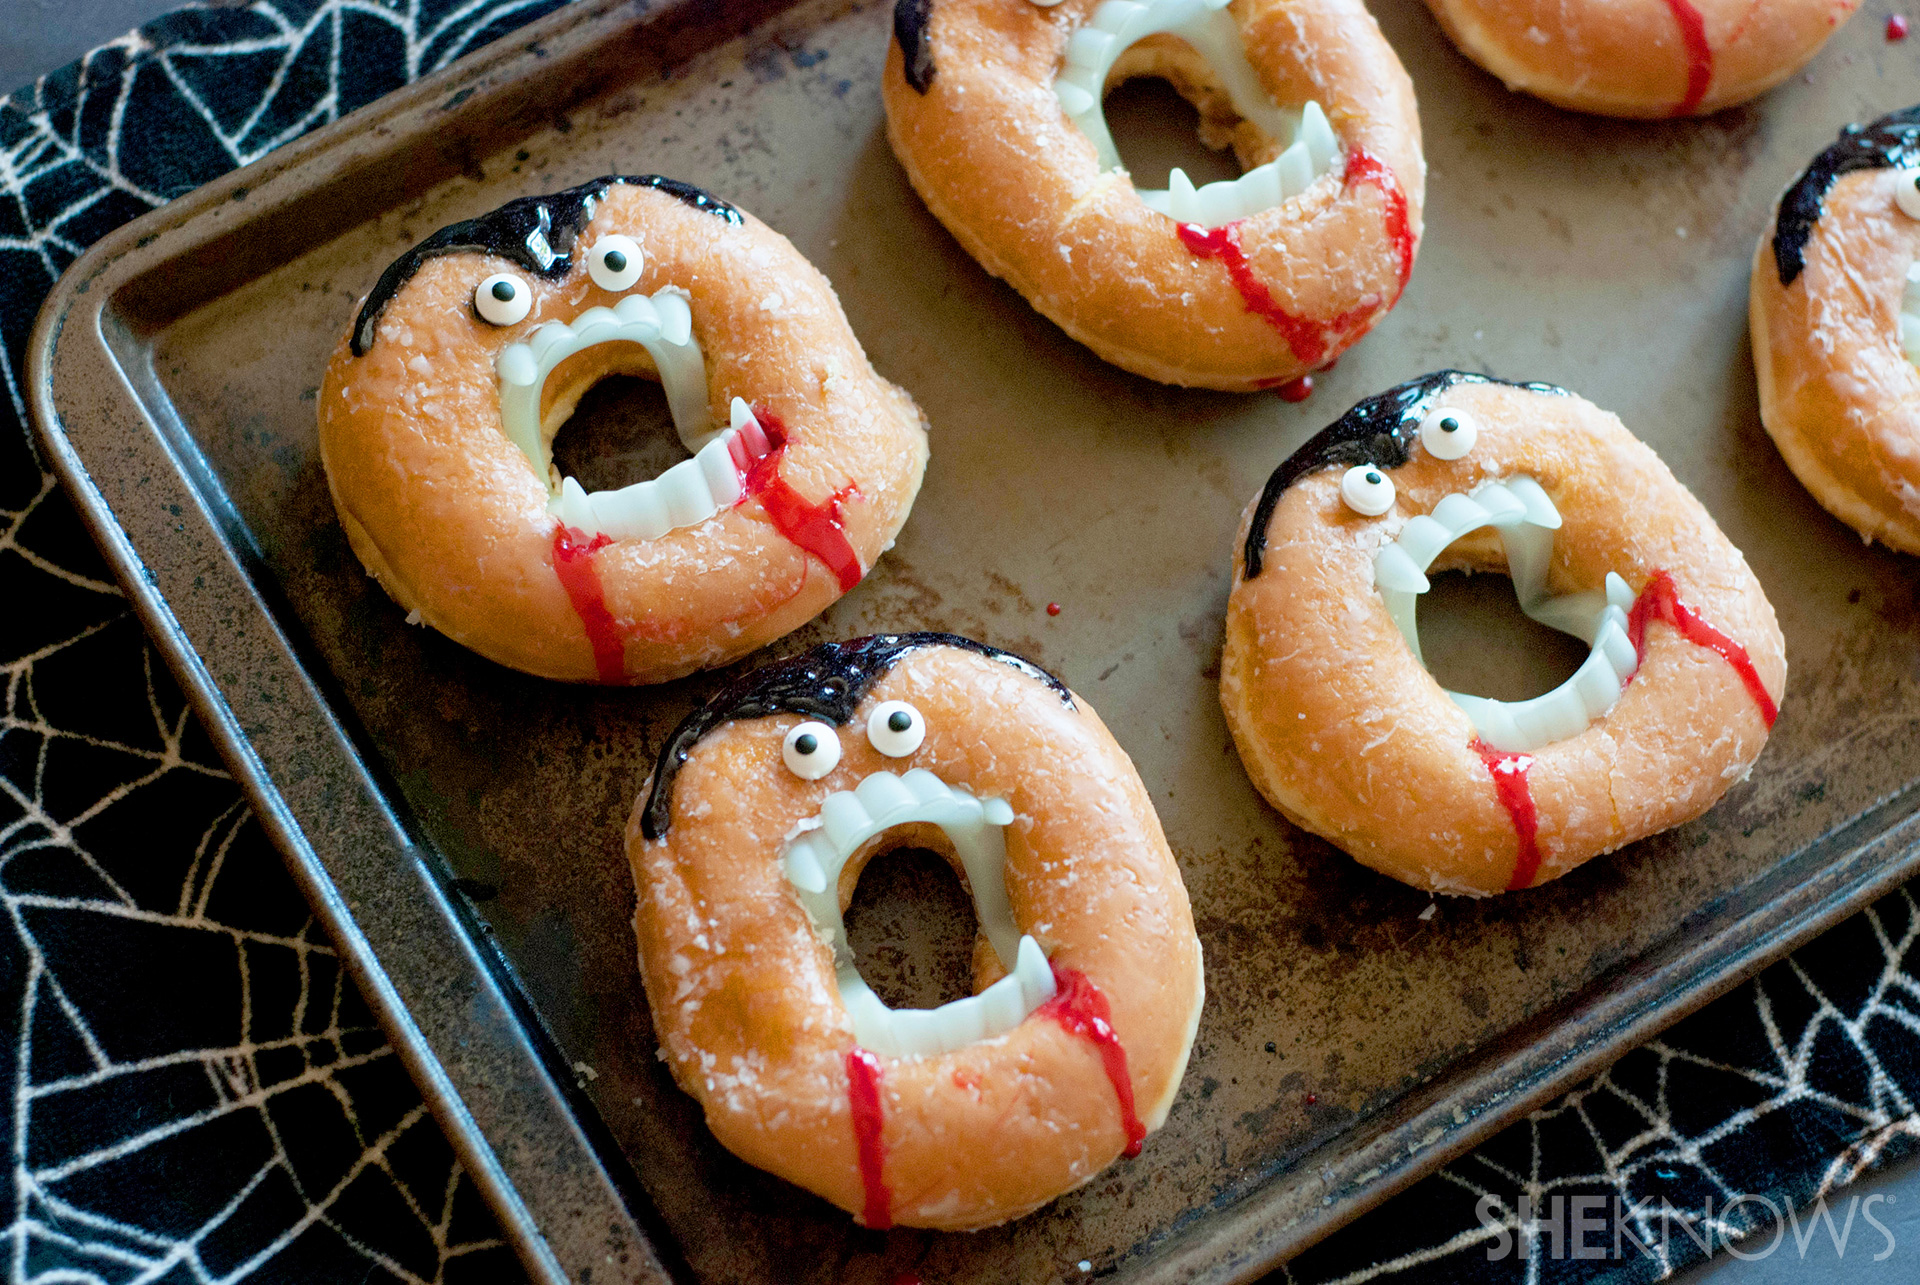 Turn doughnuts into a creepy, no-bake vampire treat